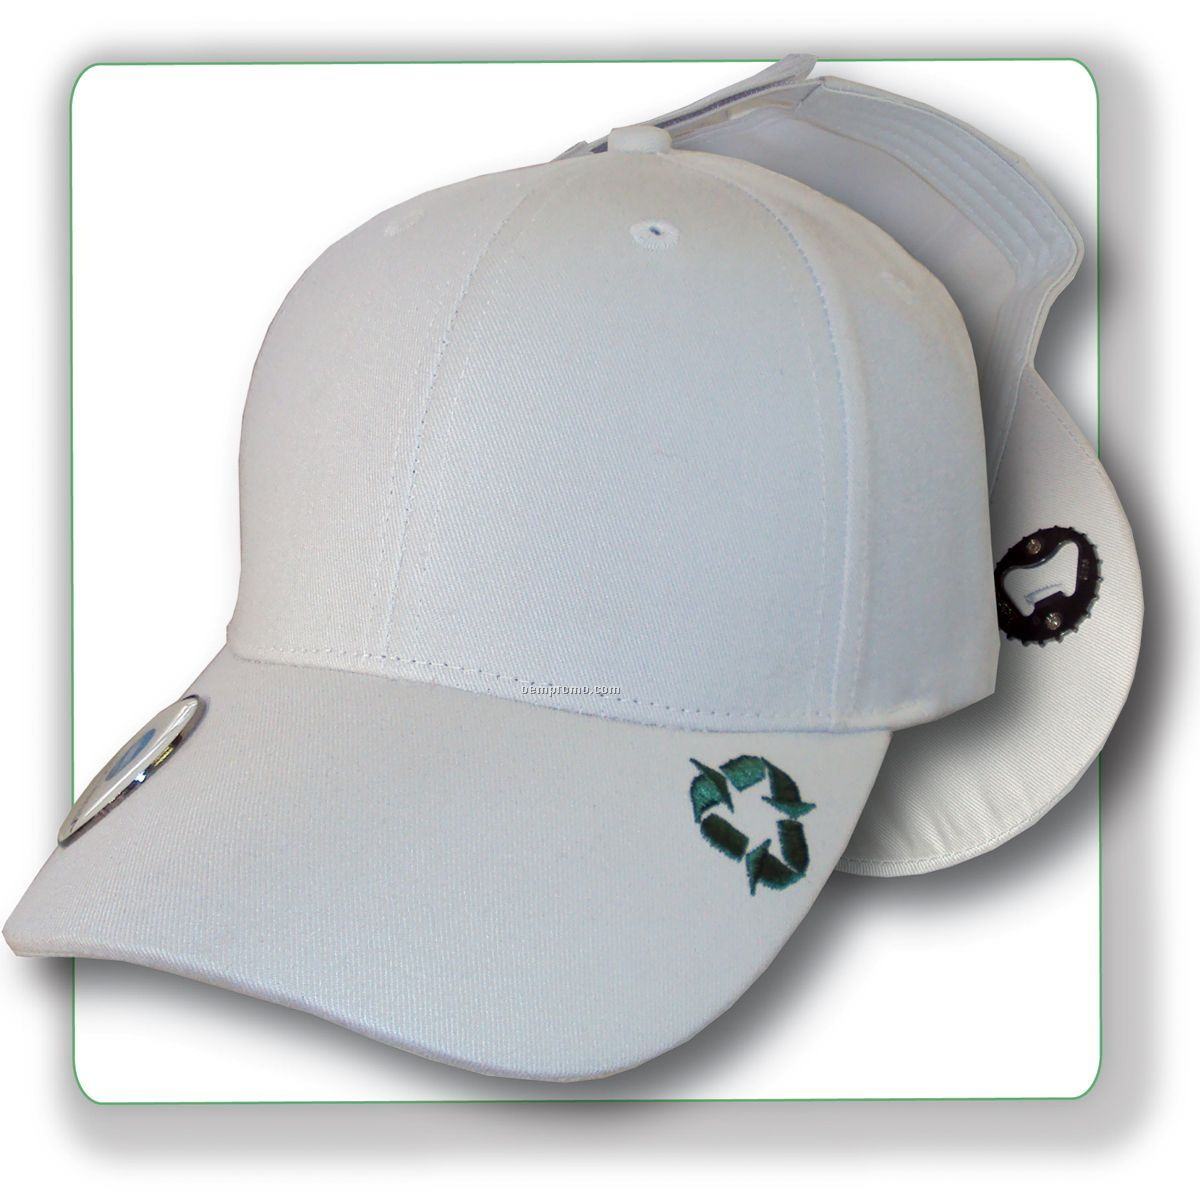 Enviro Cap With Hd Beverage Opener